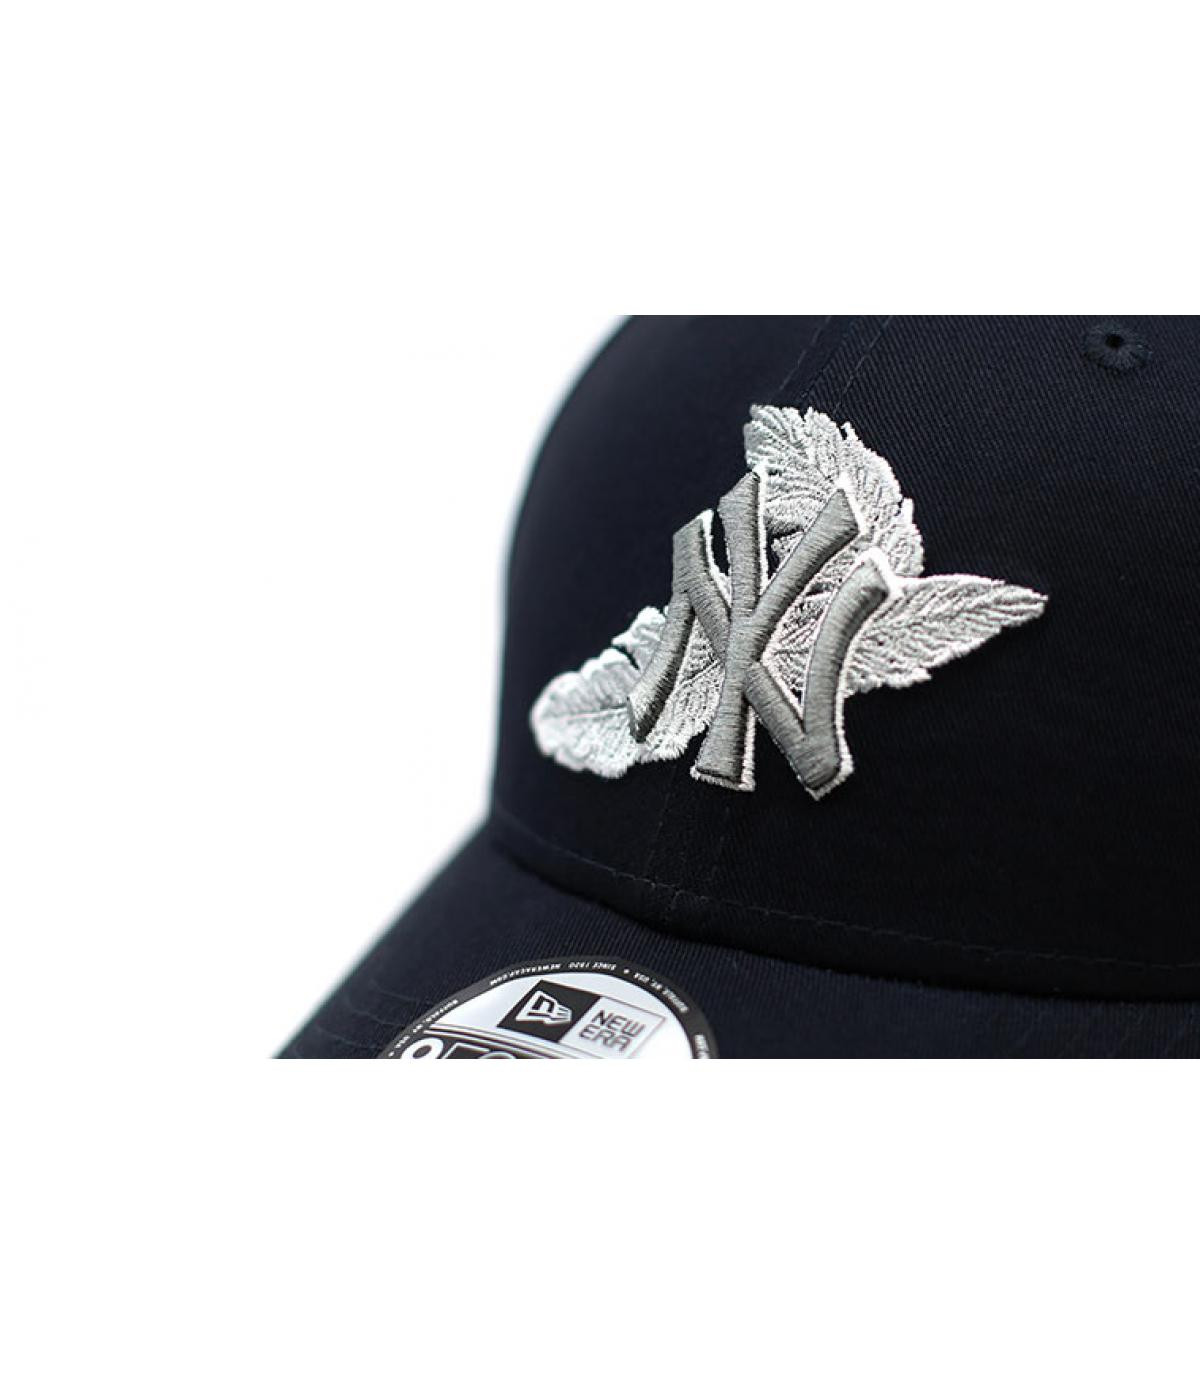 Détails Casquette MLB Light Weight NY 9Forty navy gray - image 3